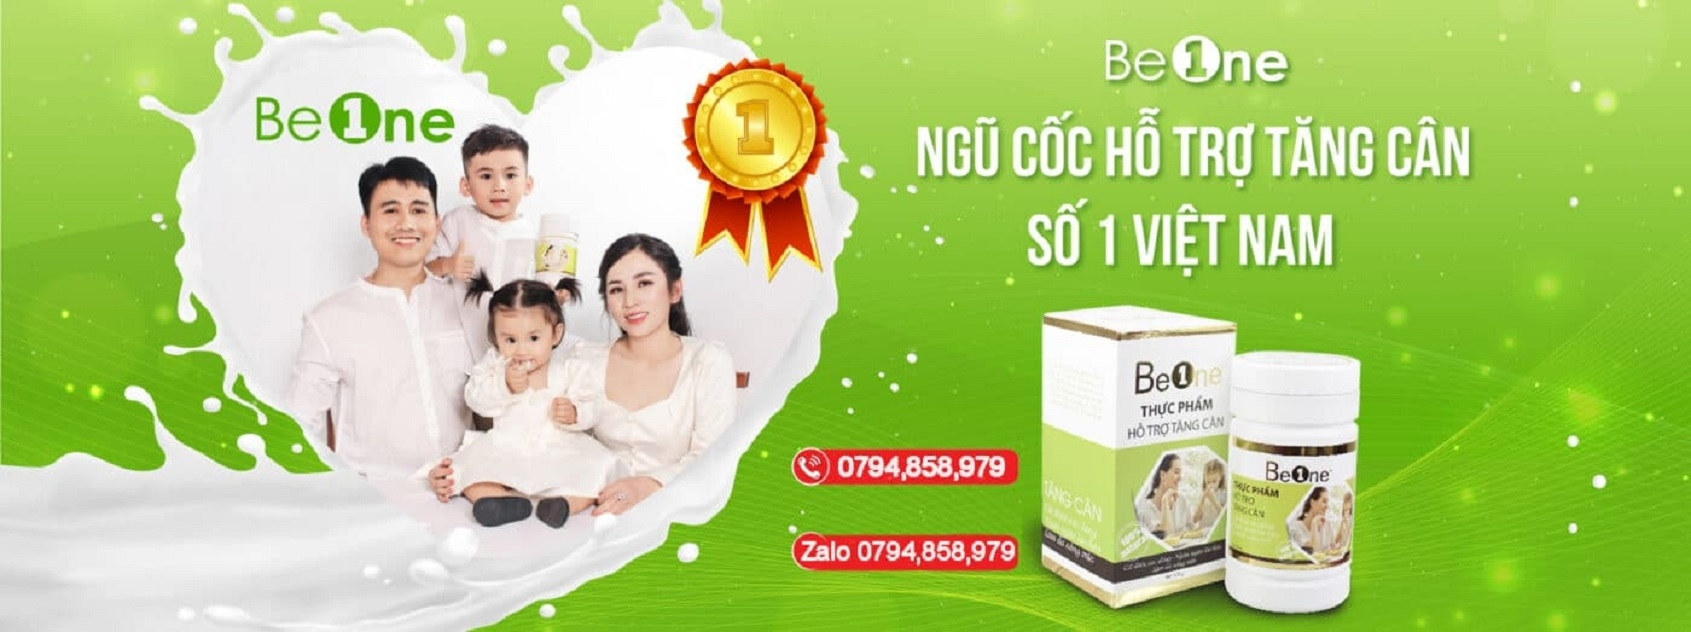 Beone - Vip - Ngũ Cốc Dinh Dưỡng (@ngucocbeonevip) Cover Image